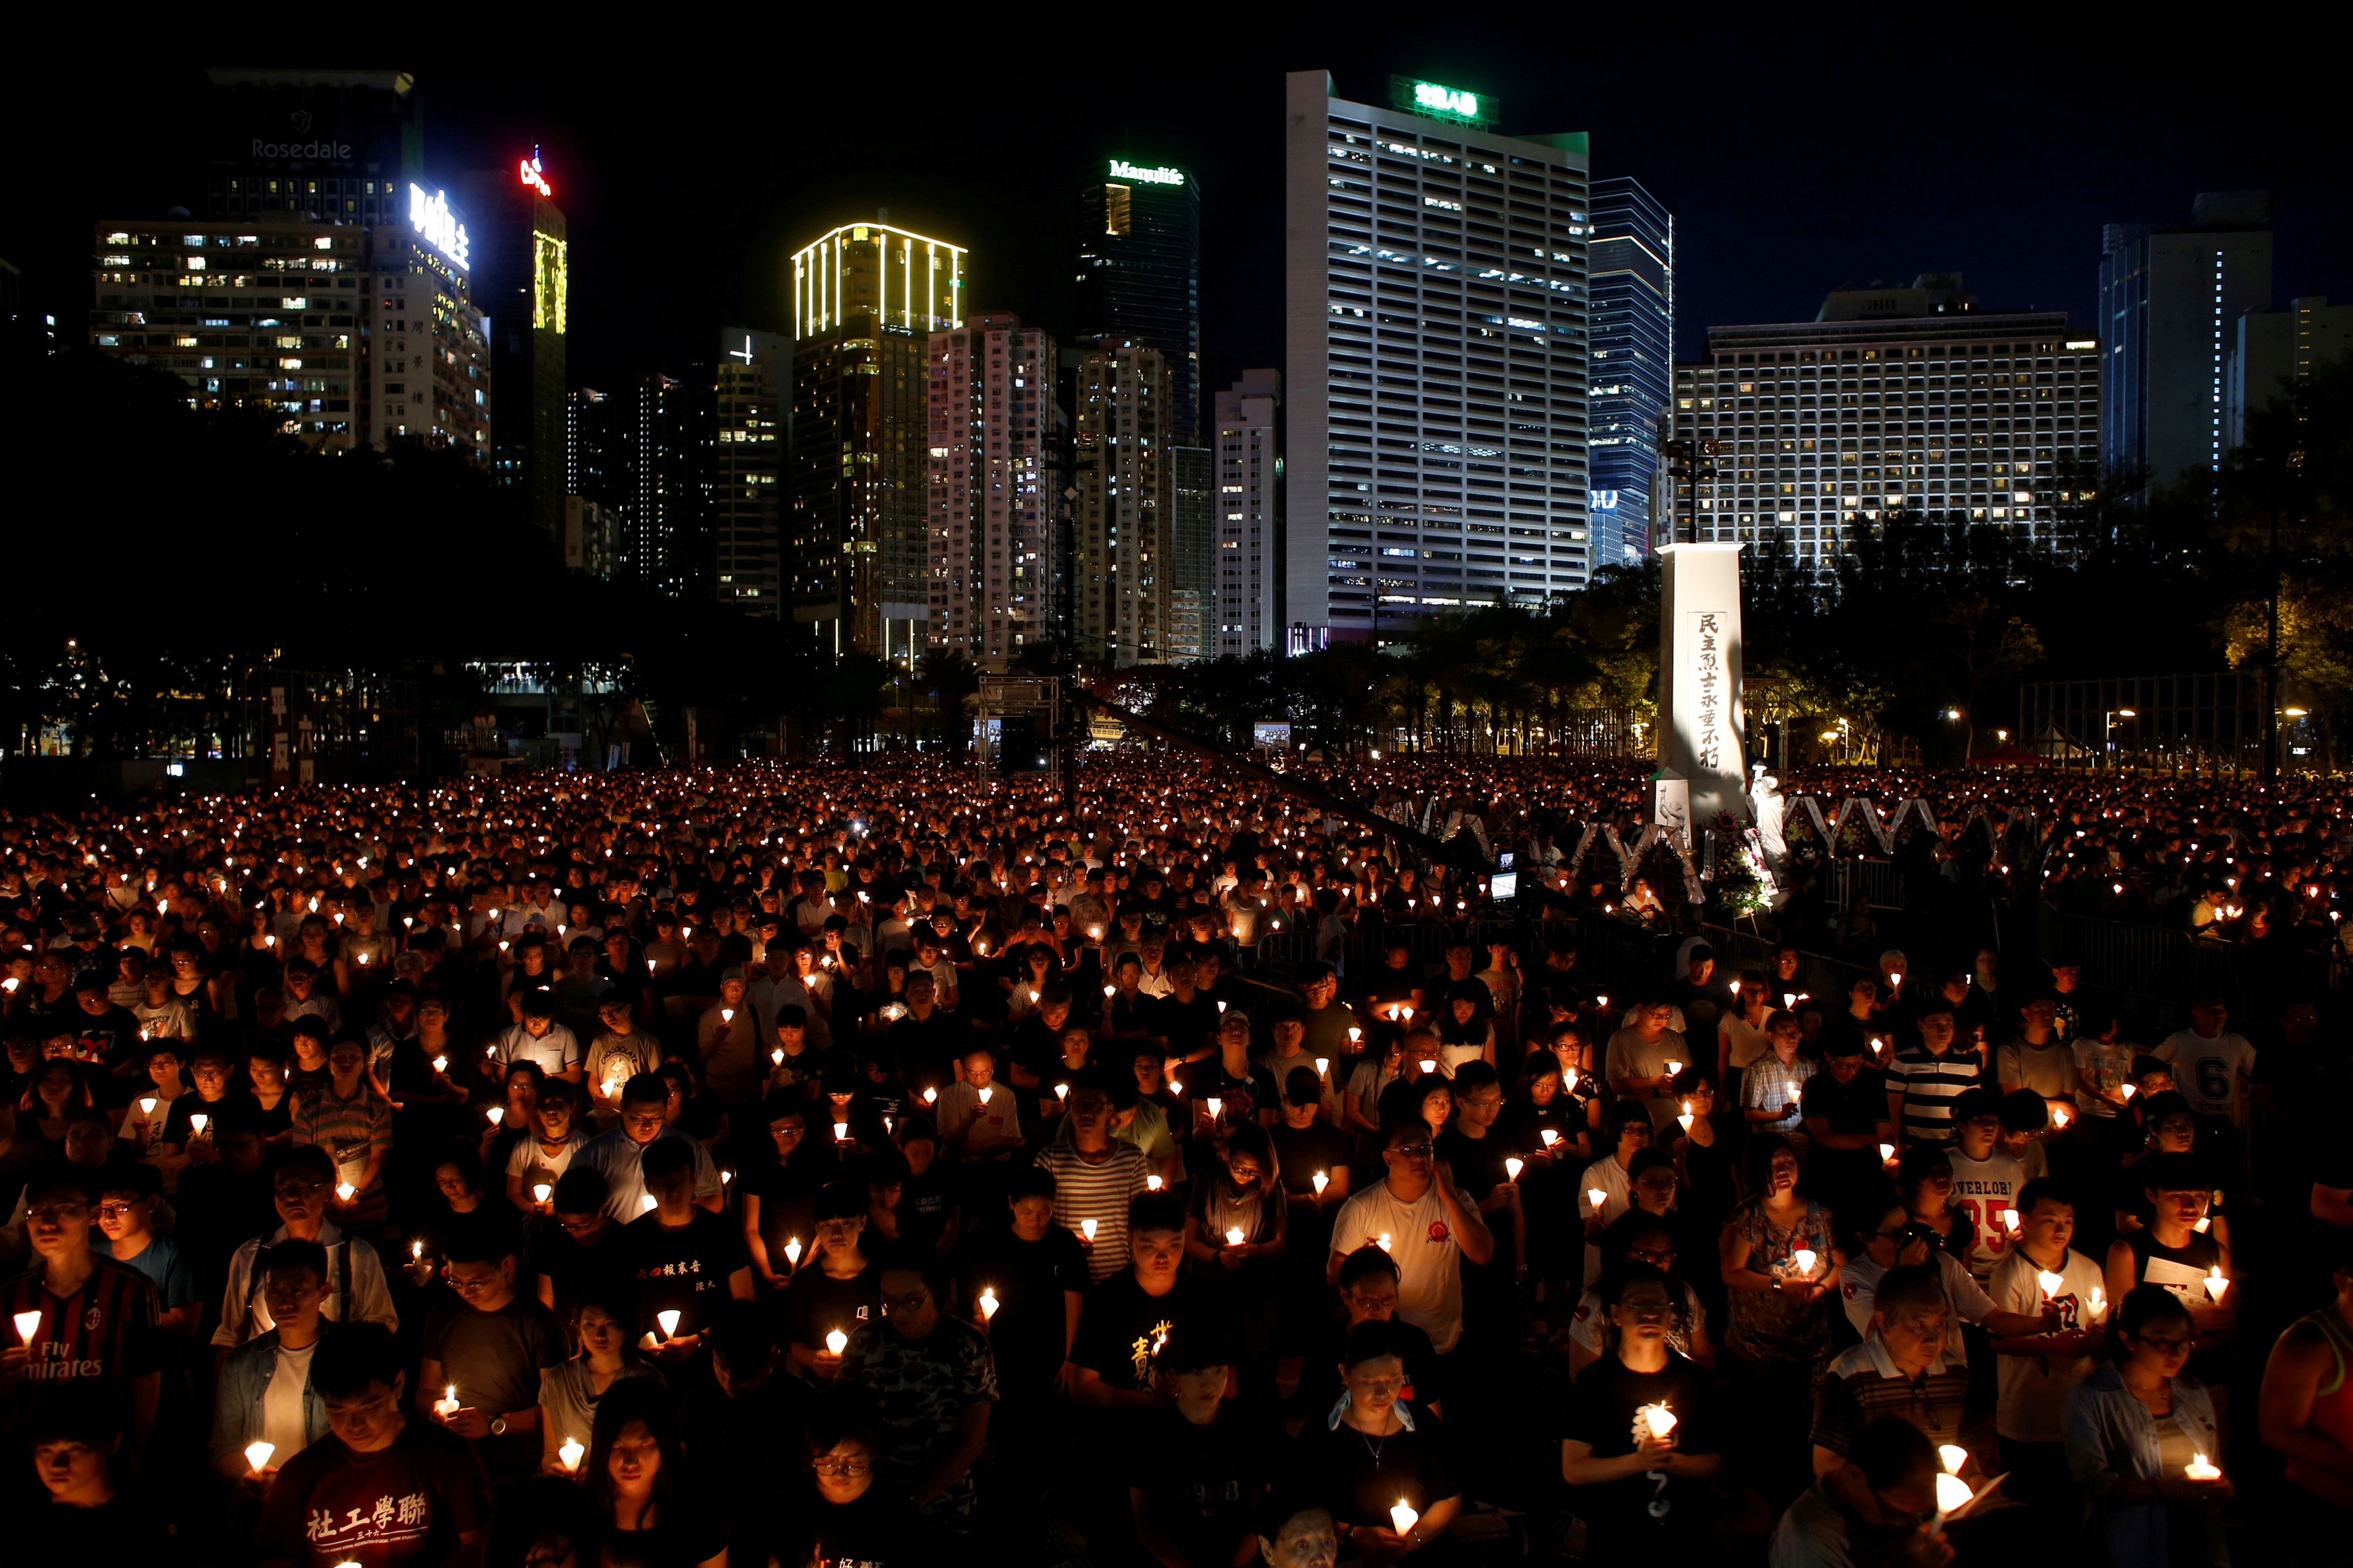 FILE PHOTO: Thousands of people take park in a candlelight vigil to mark the 27th anniversary of the crackdown of pro-democracy movement at Beijing's Tiananmen Square in 1989, at Victoria Park in Hong Kong June 4, 2016. REUTERS/Bobby Yip/File Photo